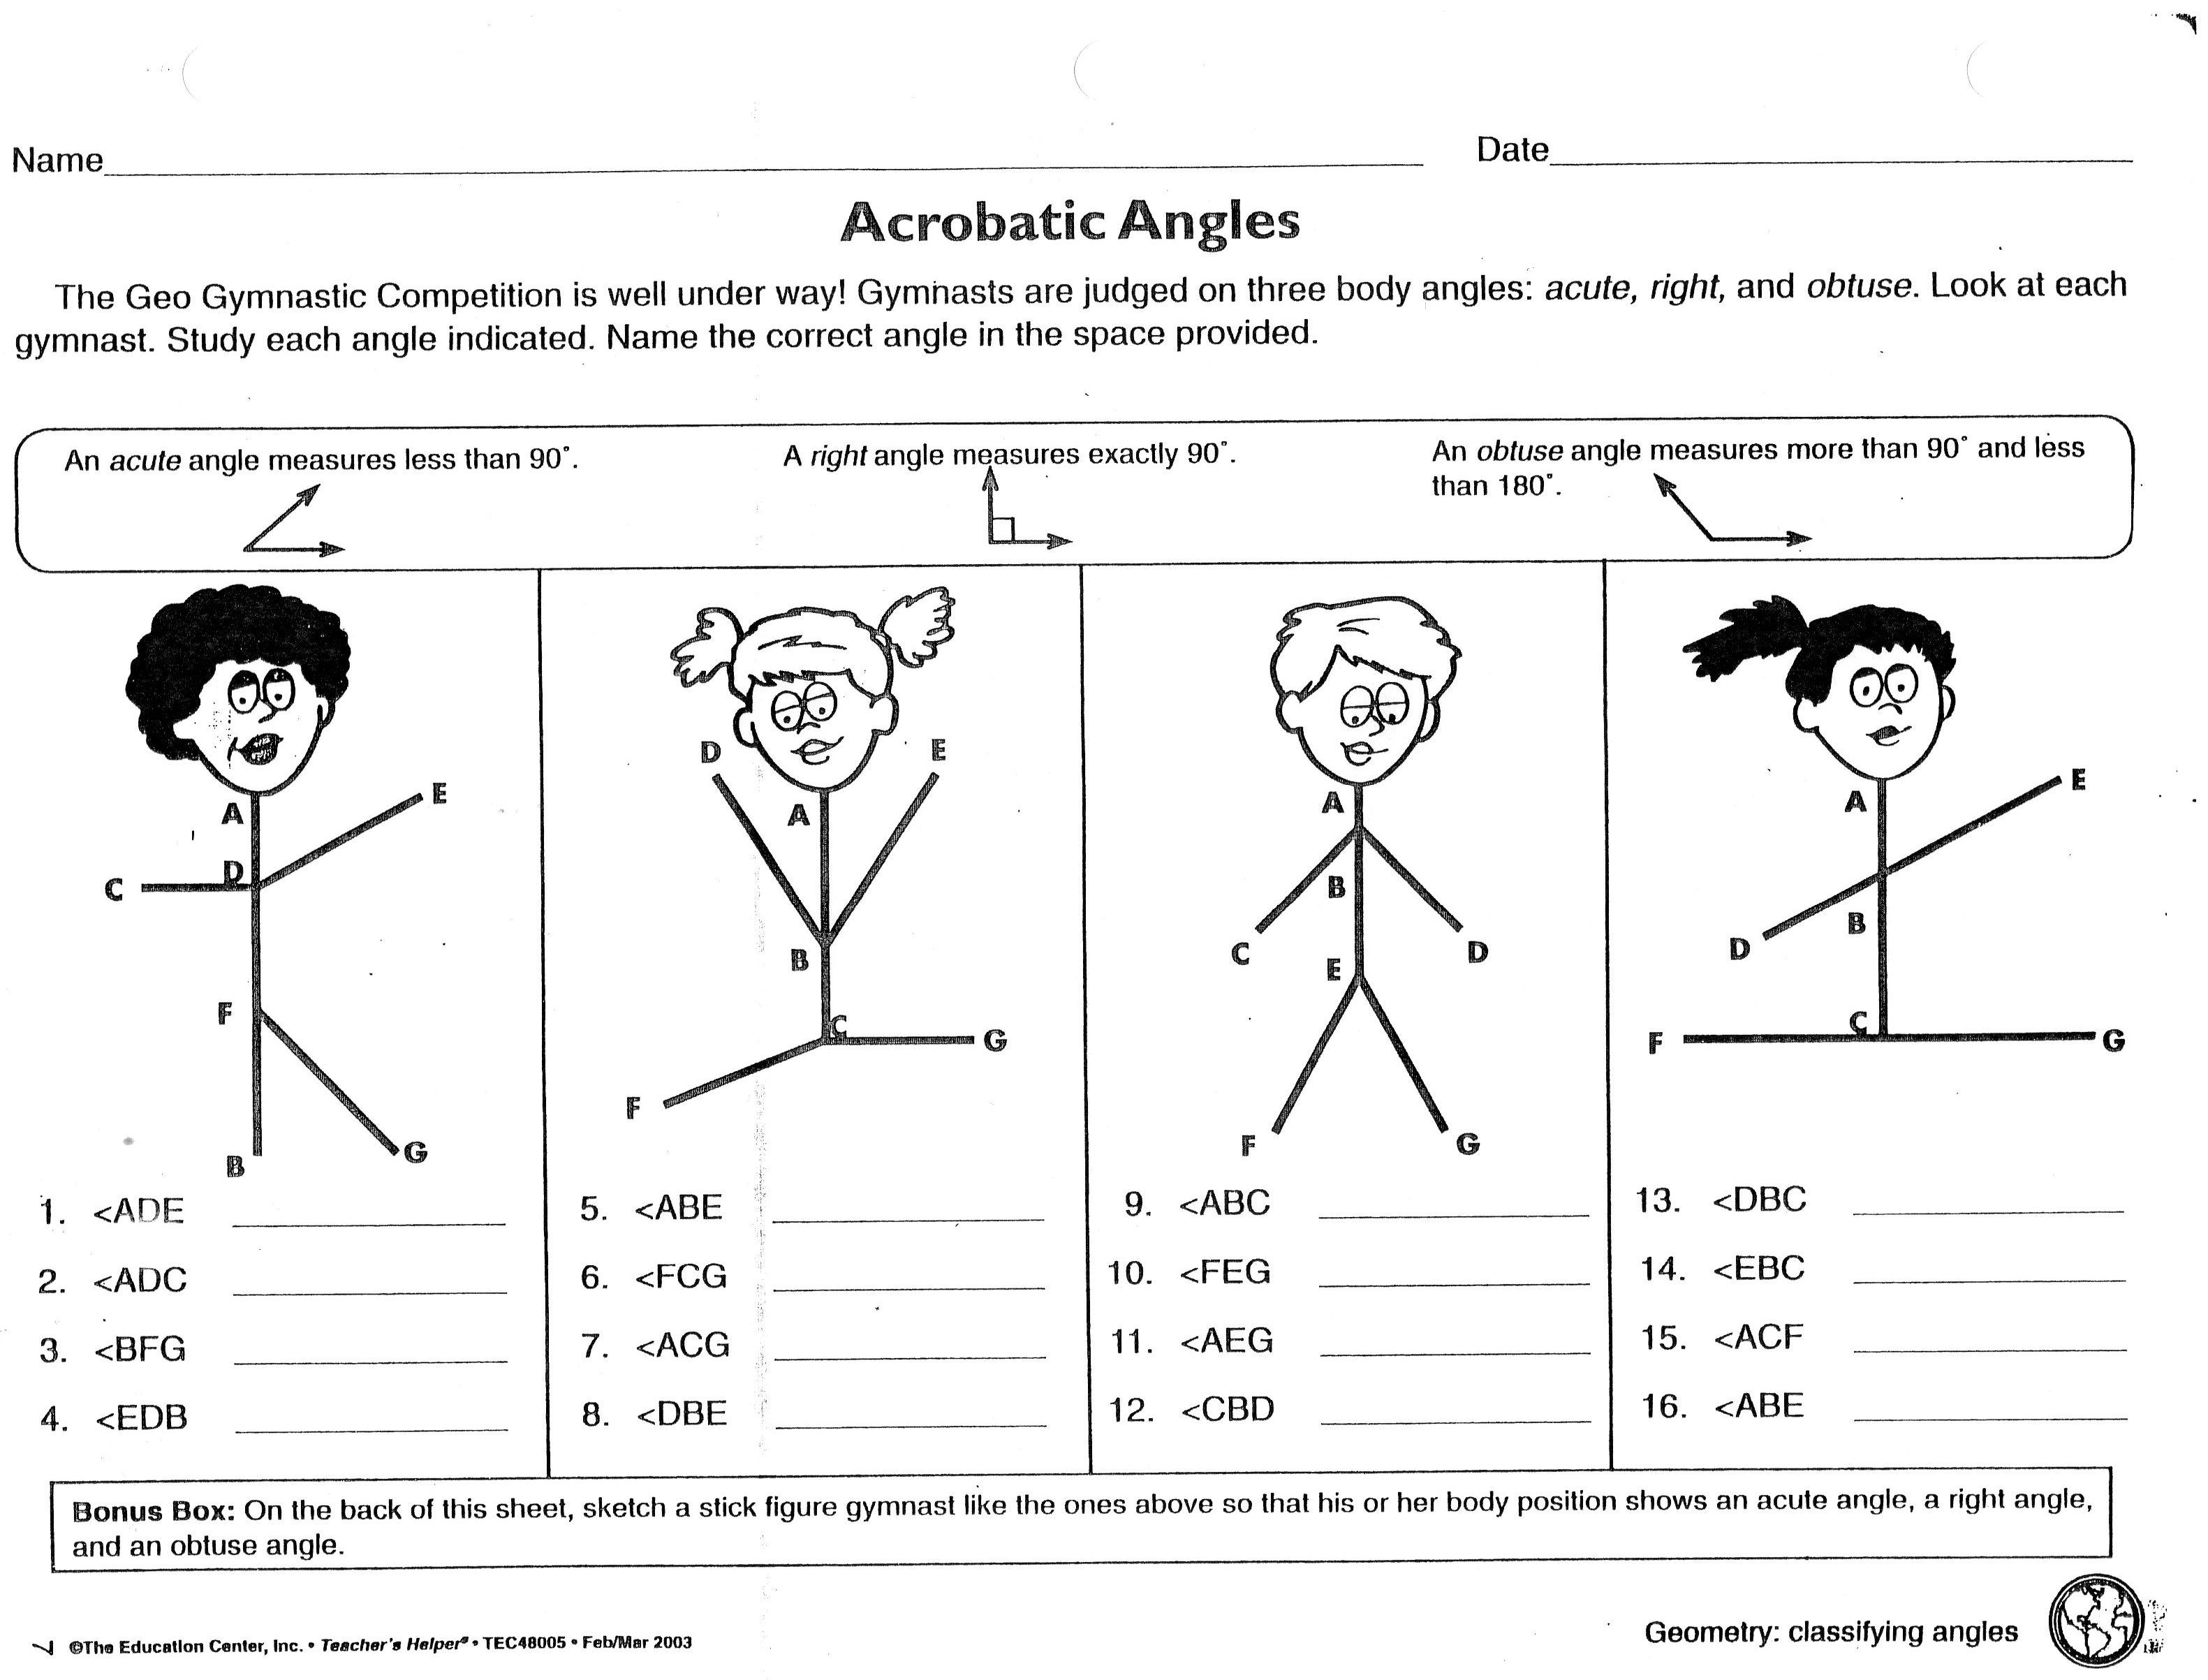 acrobatic angles worksheet obtuse acute right michael jordan was math gr -  Criabooks : Criabooks   Angles worksheet [ 2406 x 3162 Pixel ]